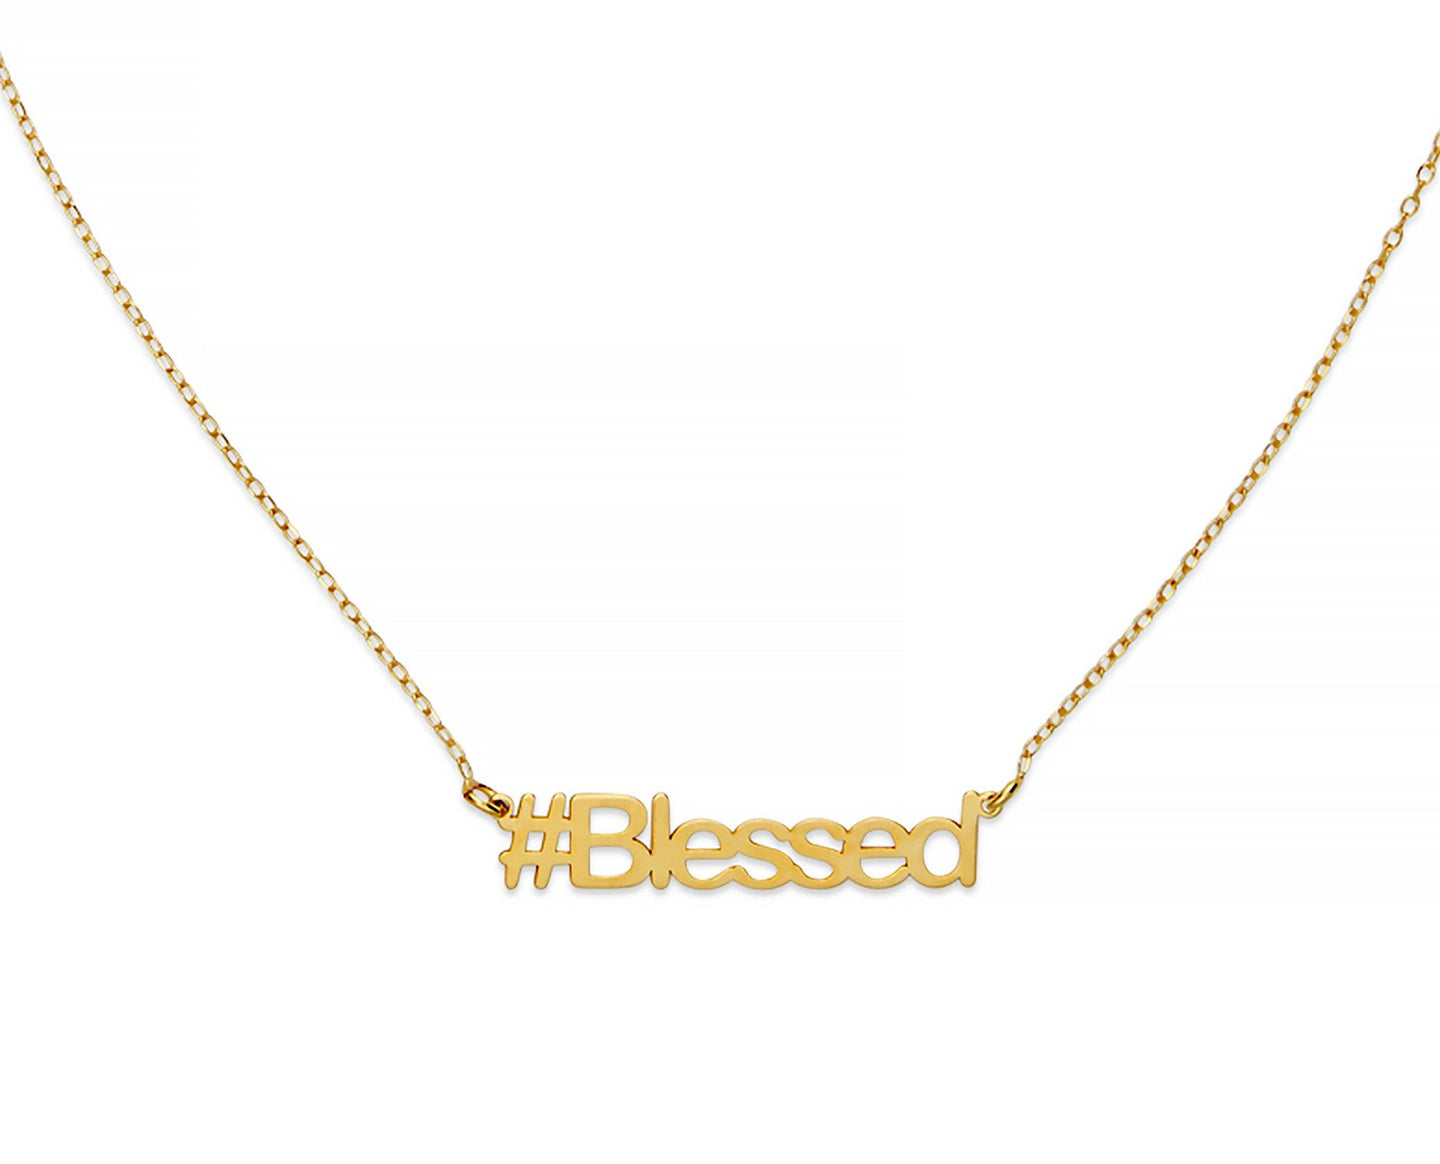 Blessed Hashtag Necklace - InclusiveJewelry